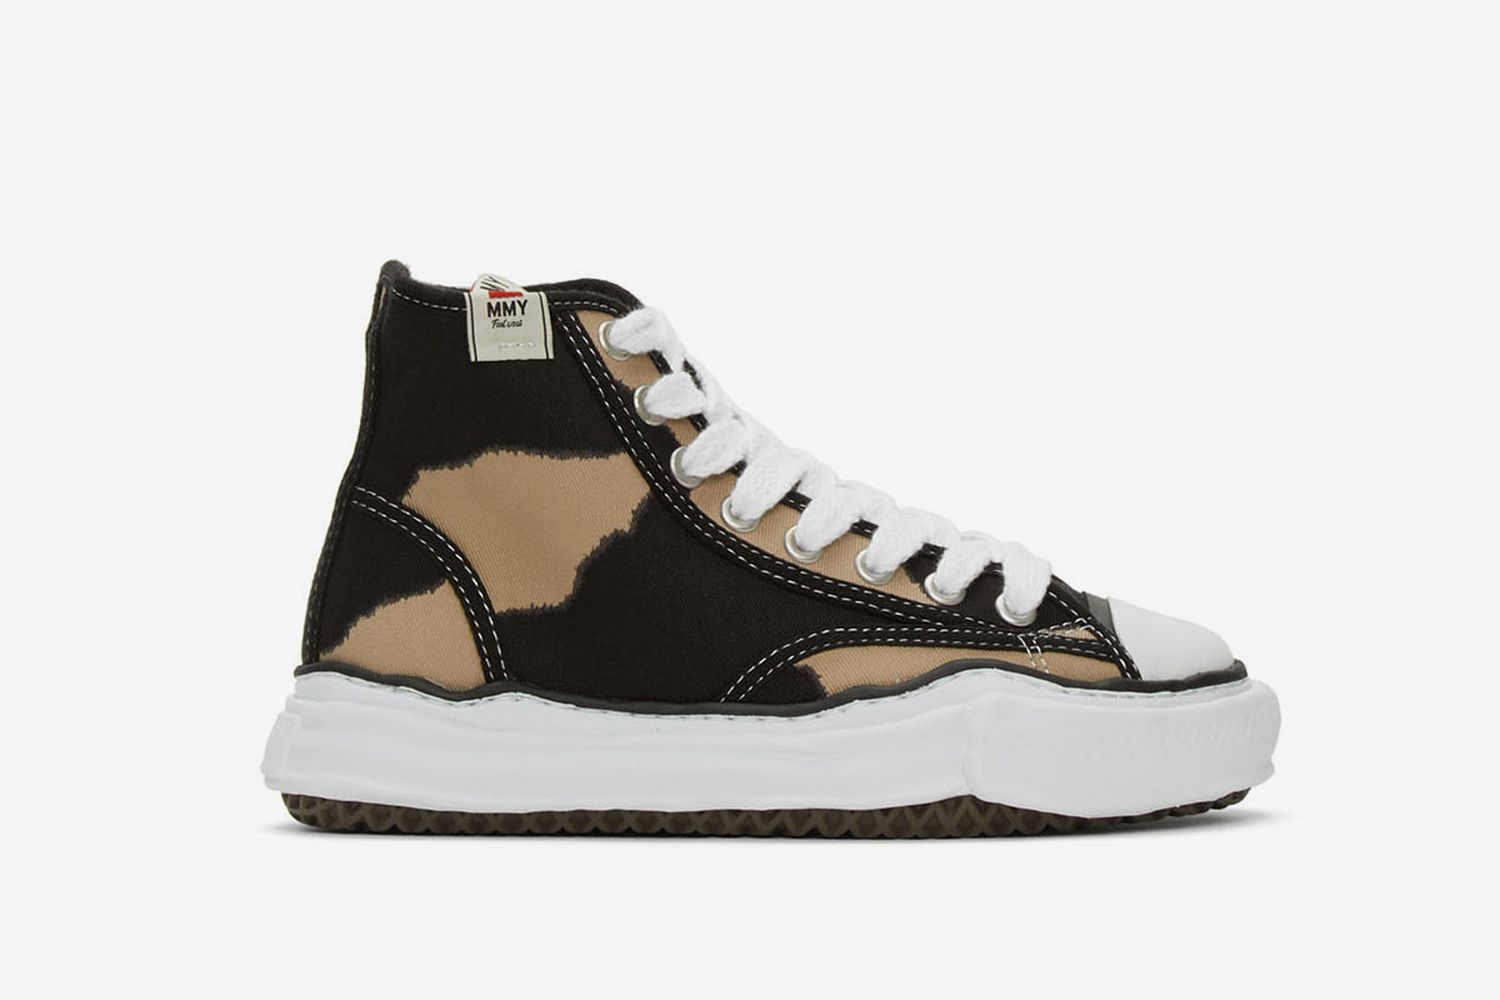 OG Sole High-Top Sneakers